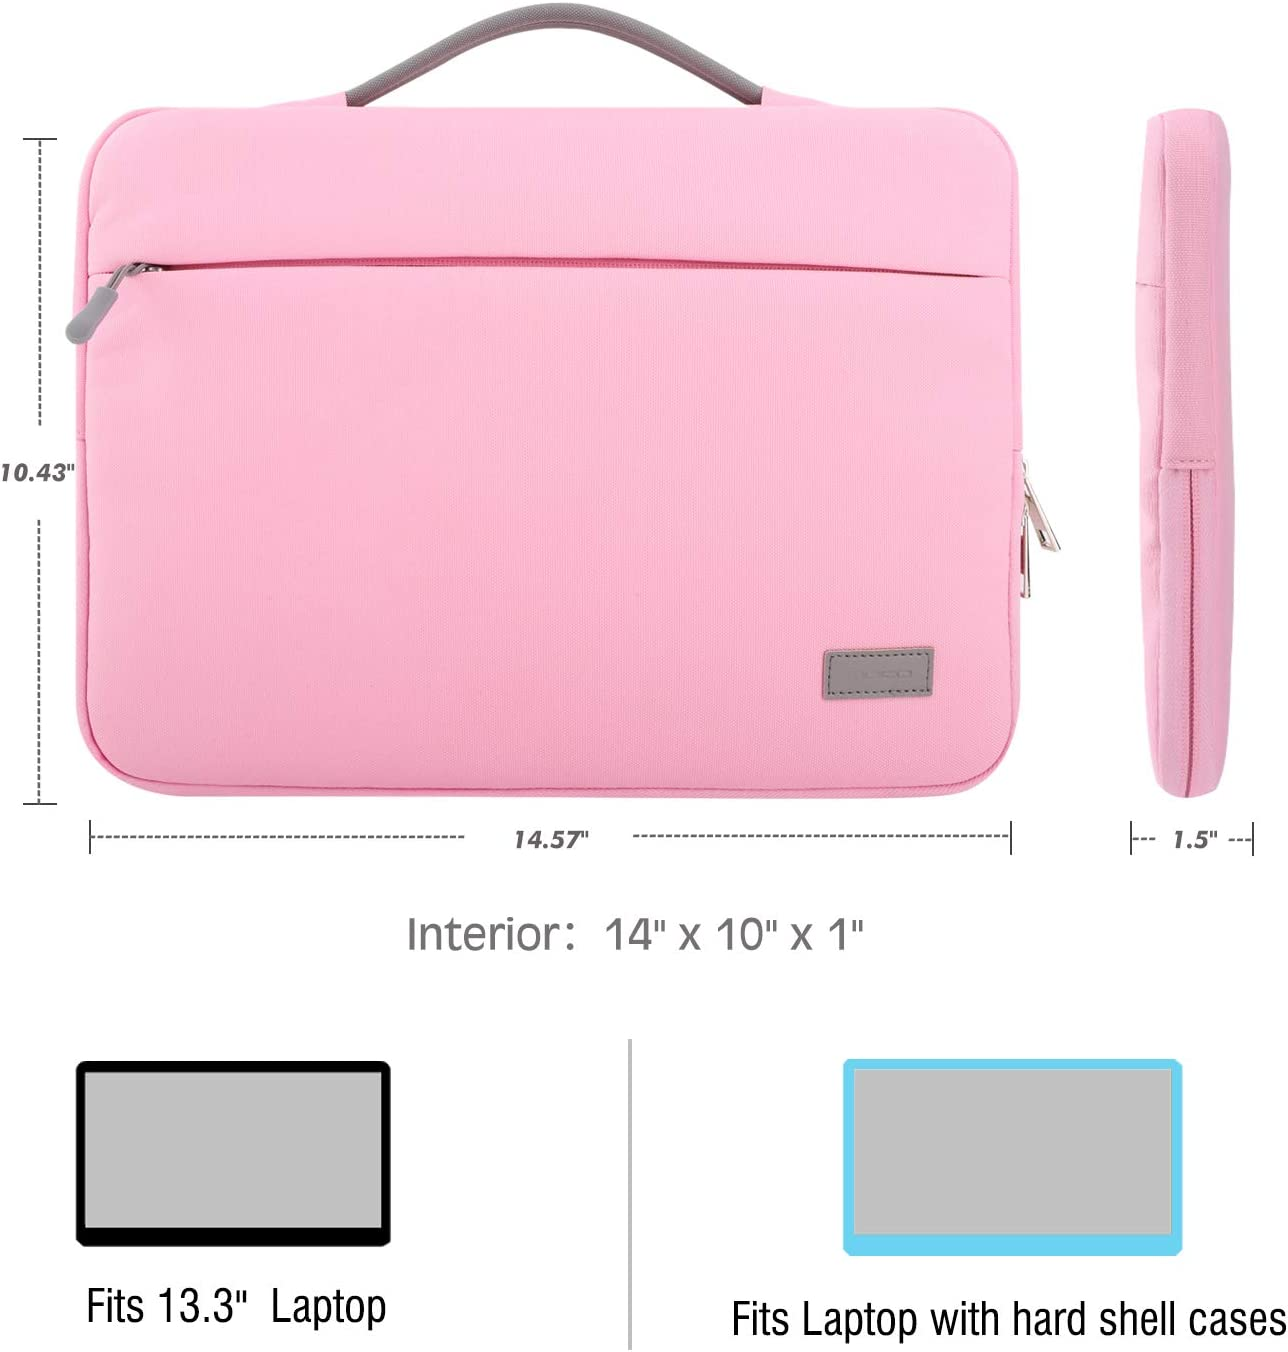 Pink Daisy Flower Laptop Sleeve 17.5 Inch Waterproof Neoprene Computer Case for Laptop Cute Art Computer Bag for MacBook Acer Samsung Ultrabook Girly Floral Laptop Case 17.3 inch for Women